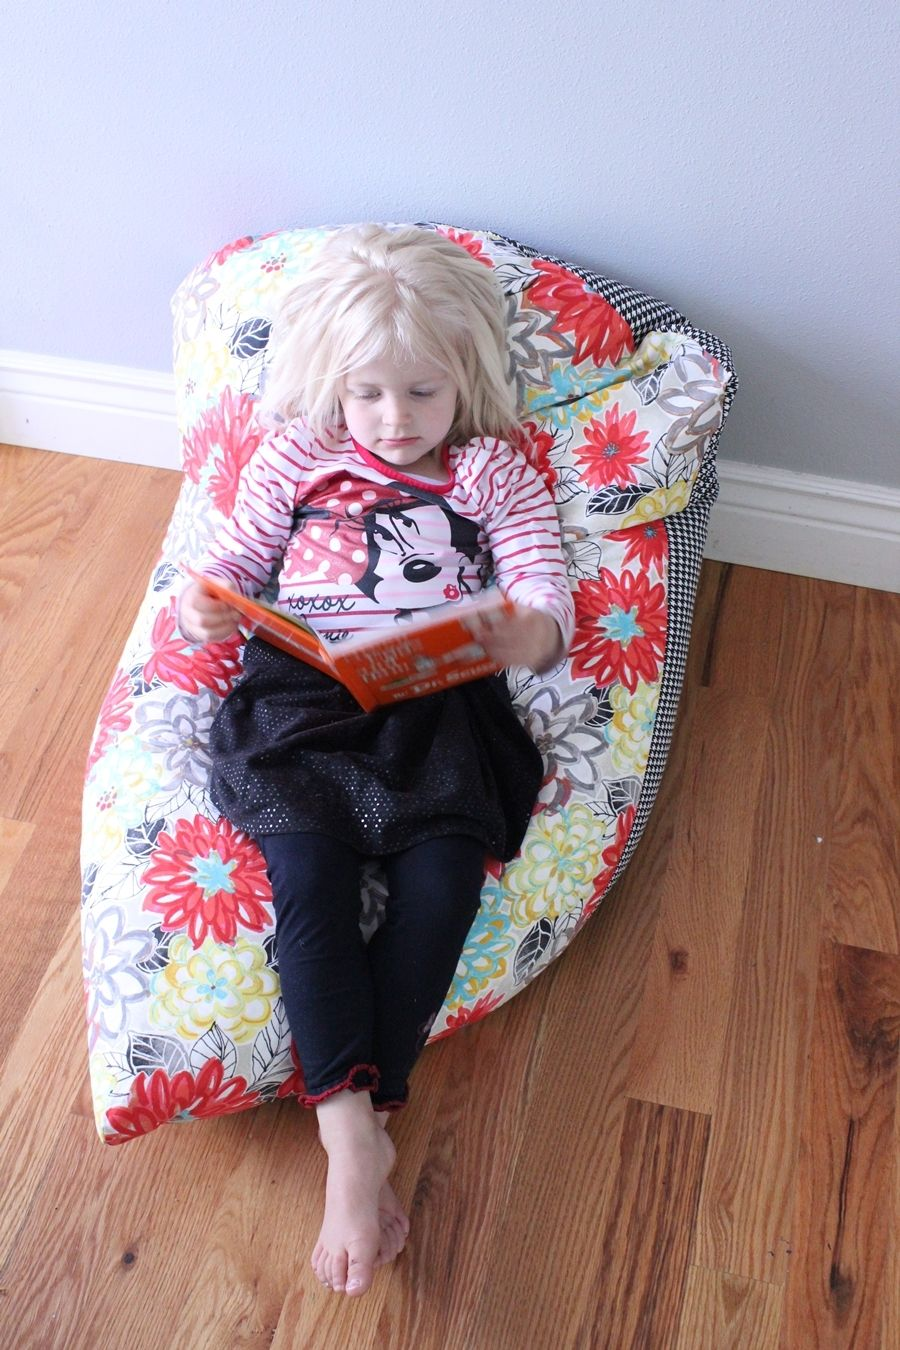 21 Fun Diy Bean Bags And Chairs You Will Love To Make